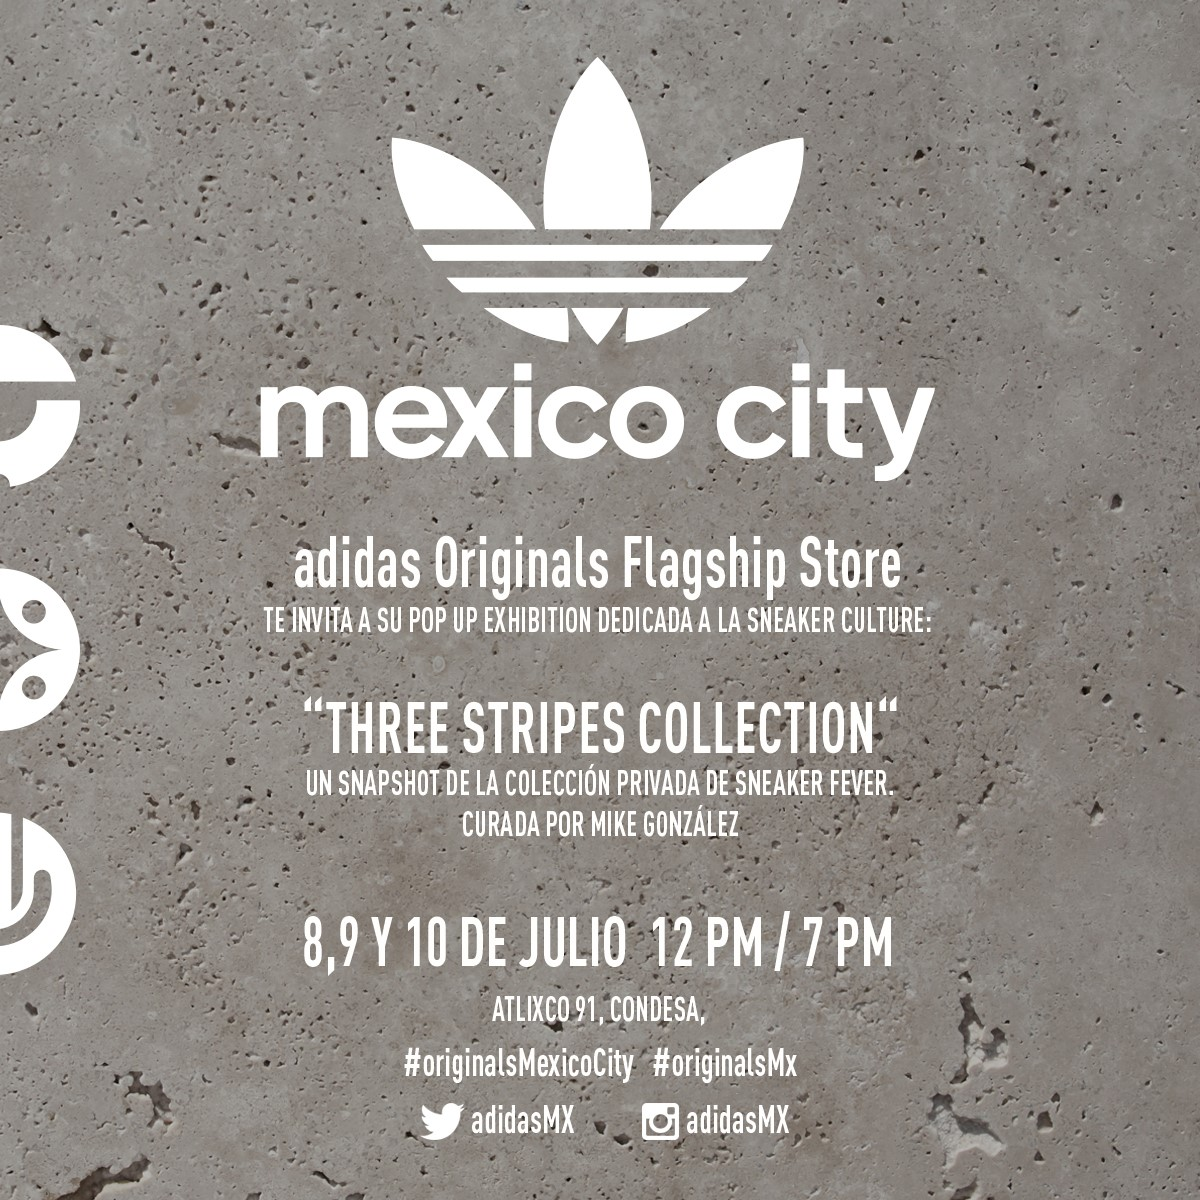 adidas originals flagship store mexico city